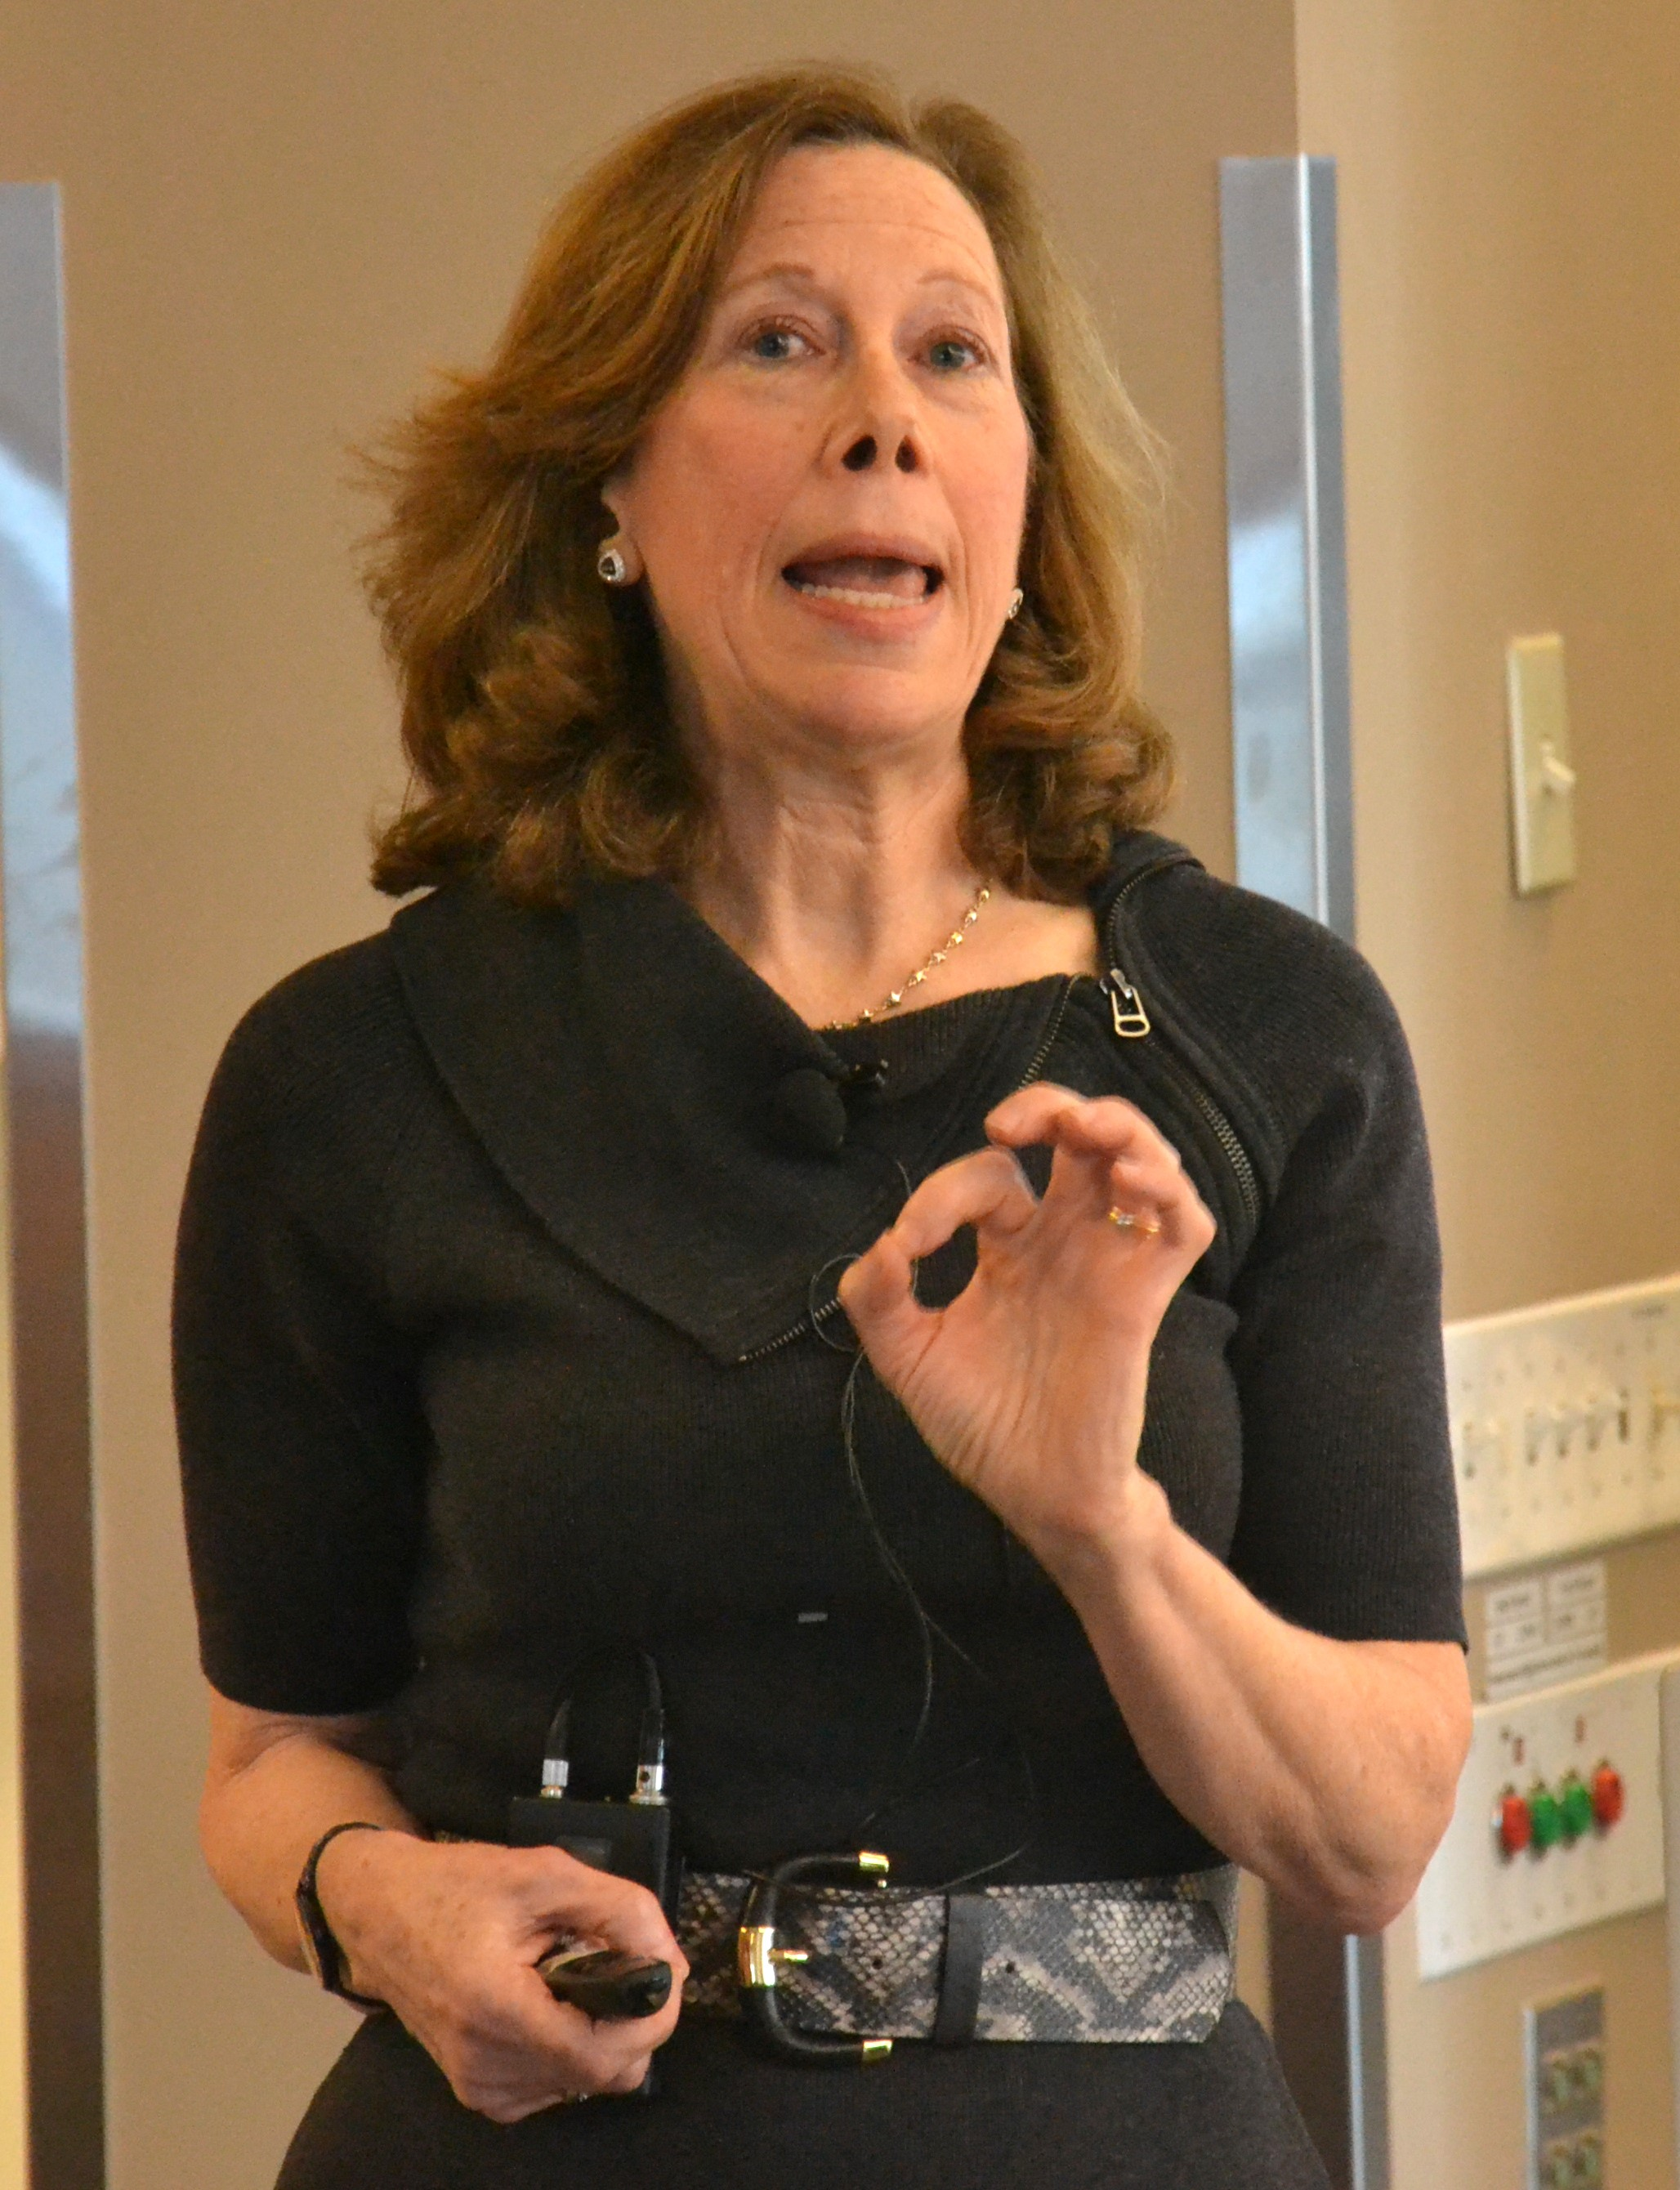 Deborah Gordon at her seminar presentation at Harvard Kennedy School of Government. A summary of her seminar is available  here .